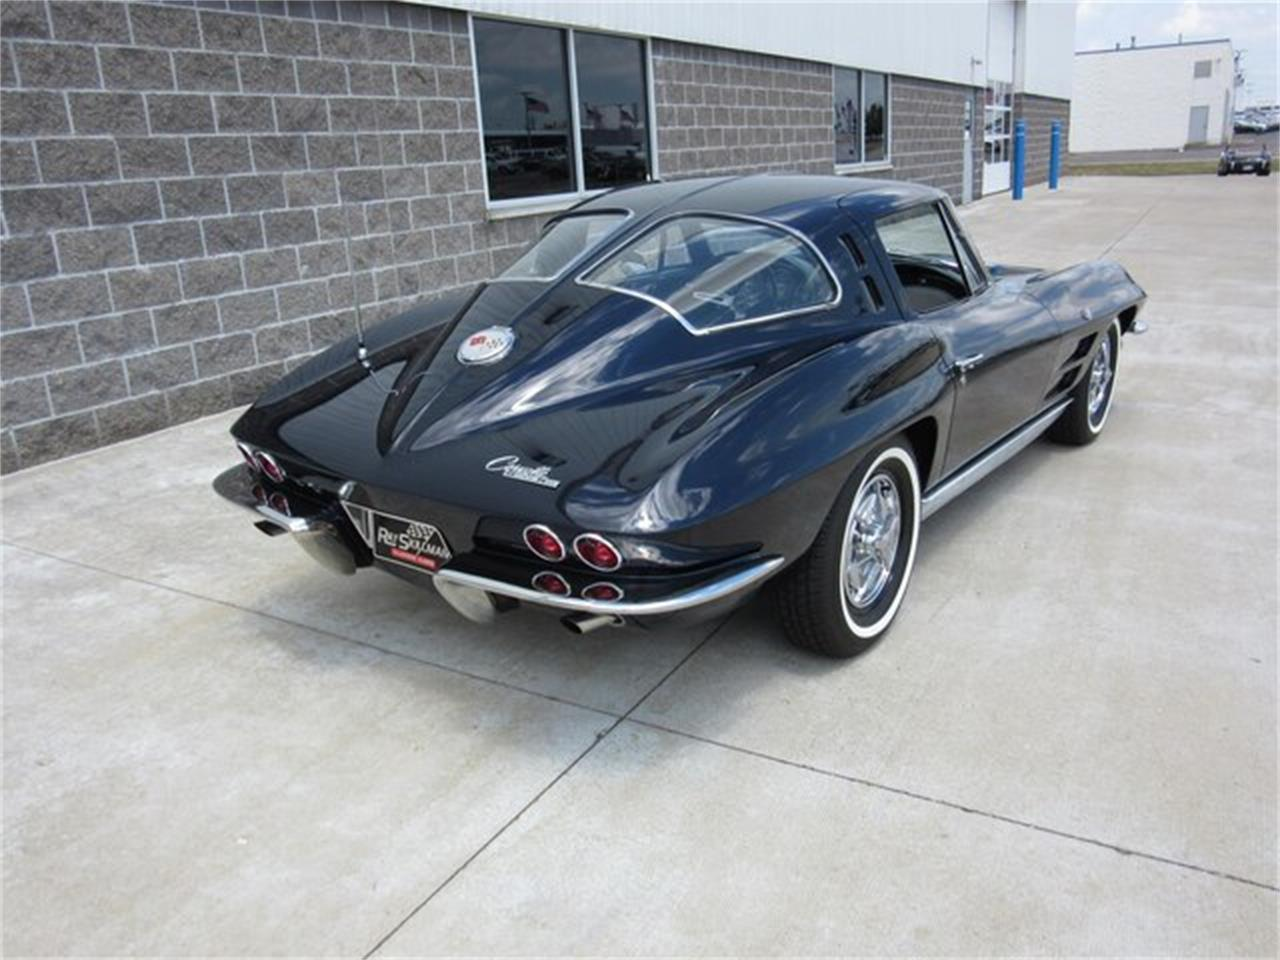 Large Picture of '63 Corvette located in Indiana - $119,000.00 Offered by Ray Skillman Classic Cars - QKZR